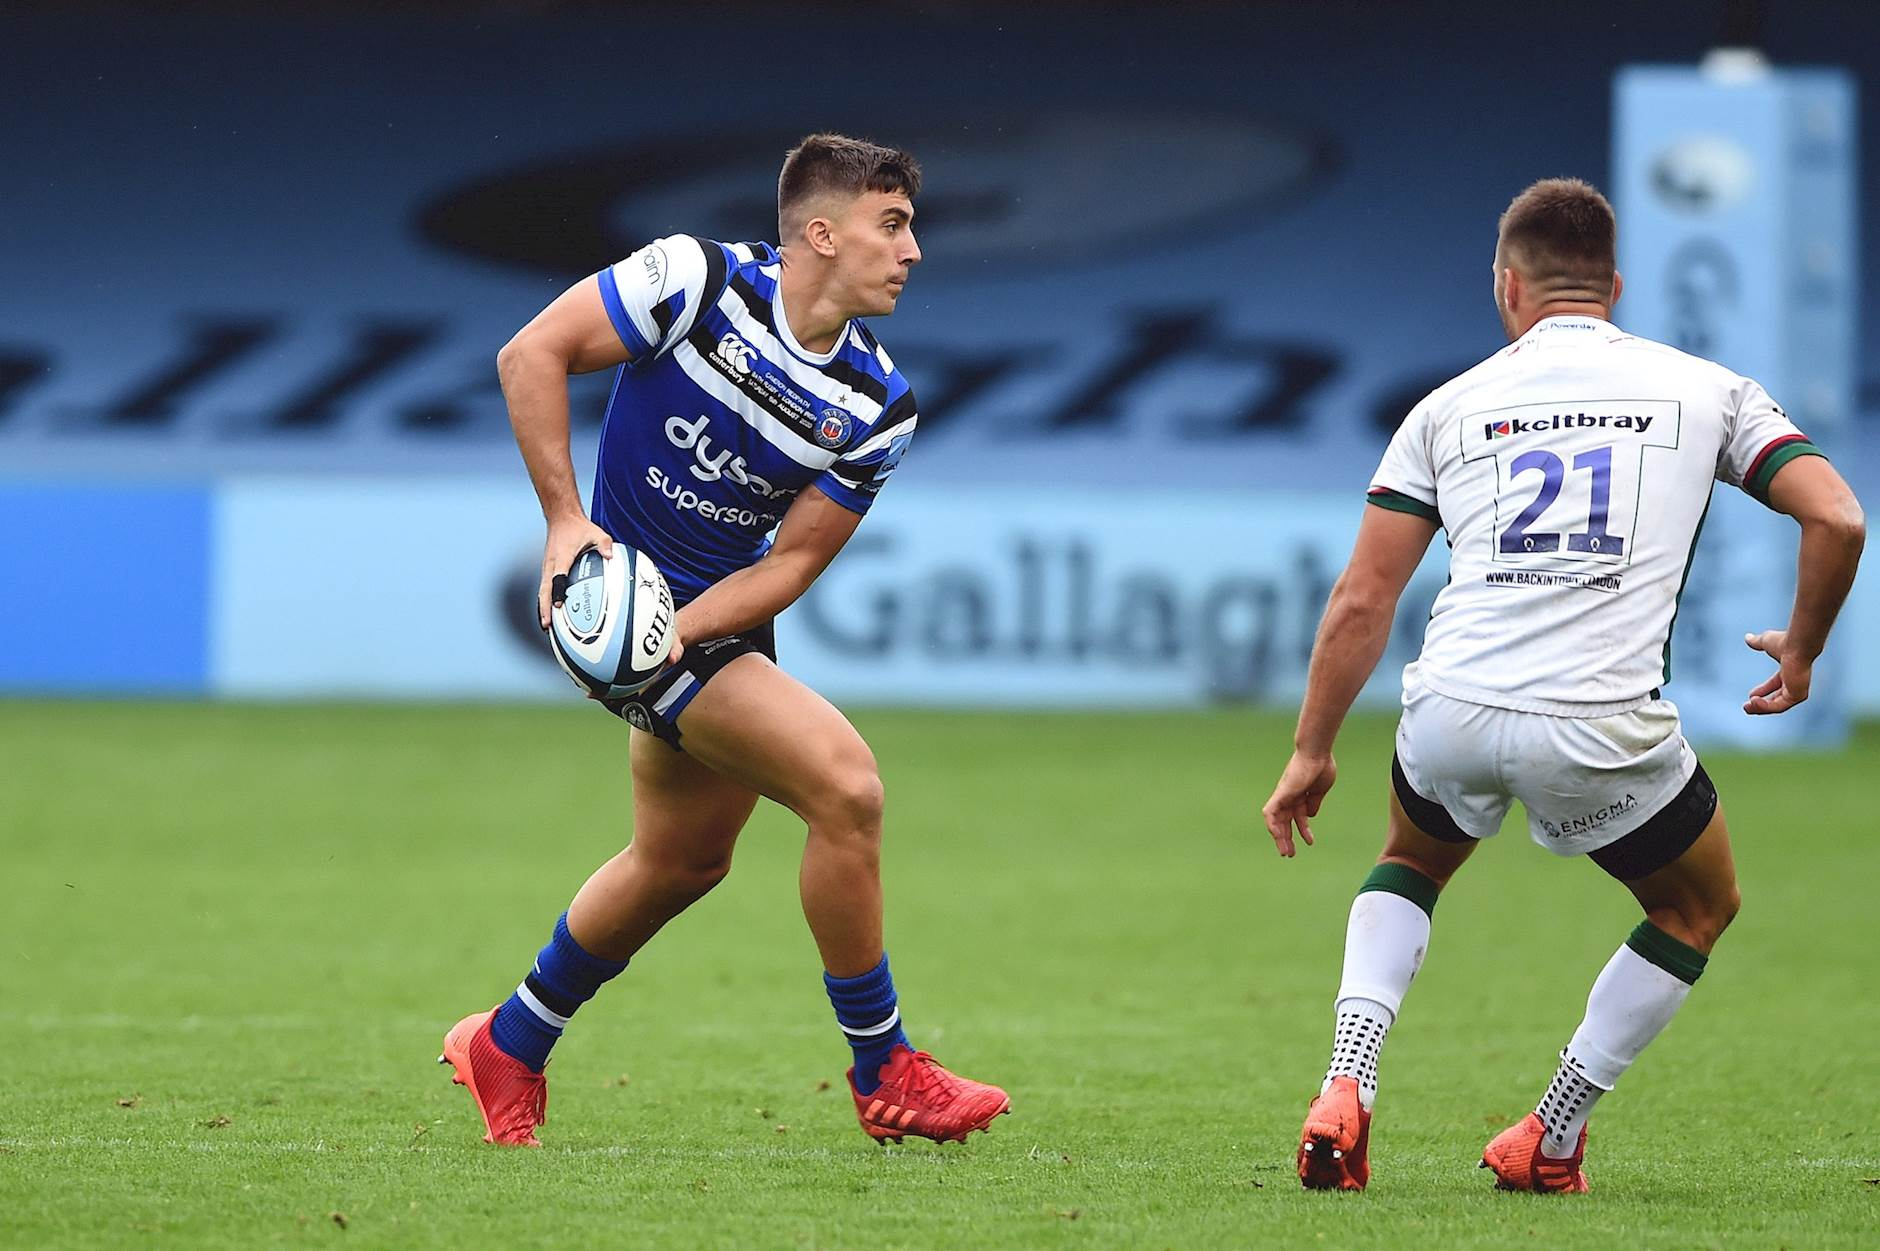 Cameron Redpath set for first start in Blue, Black and White